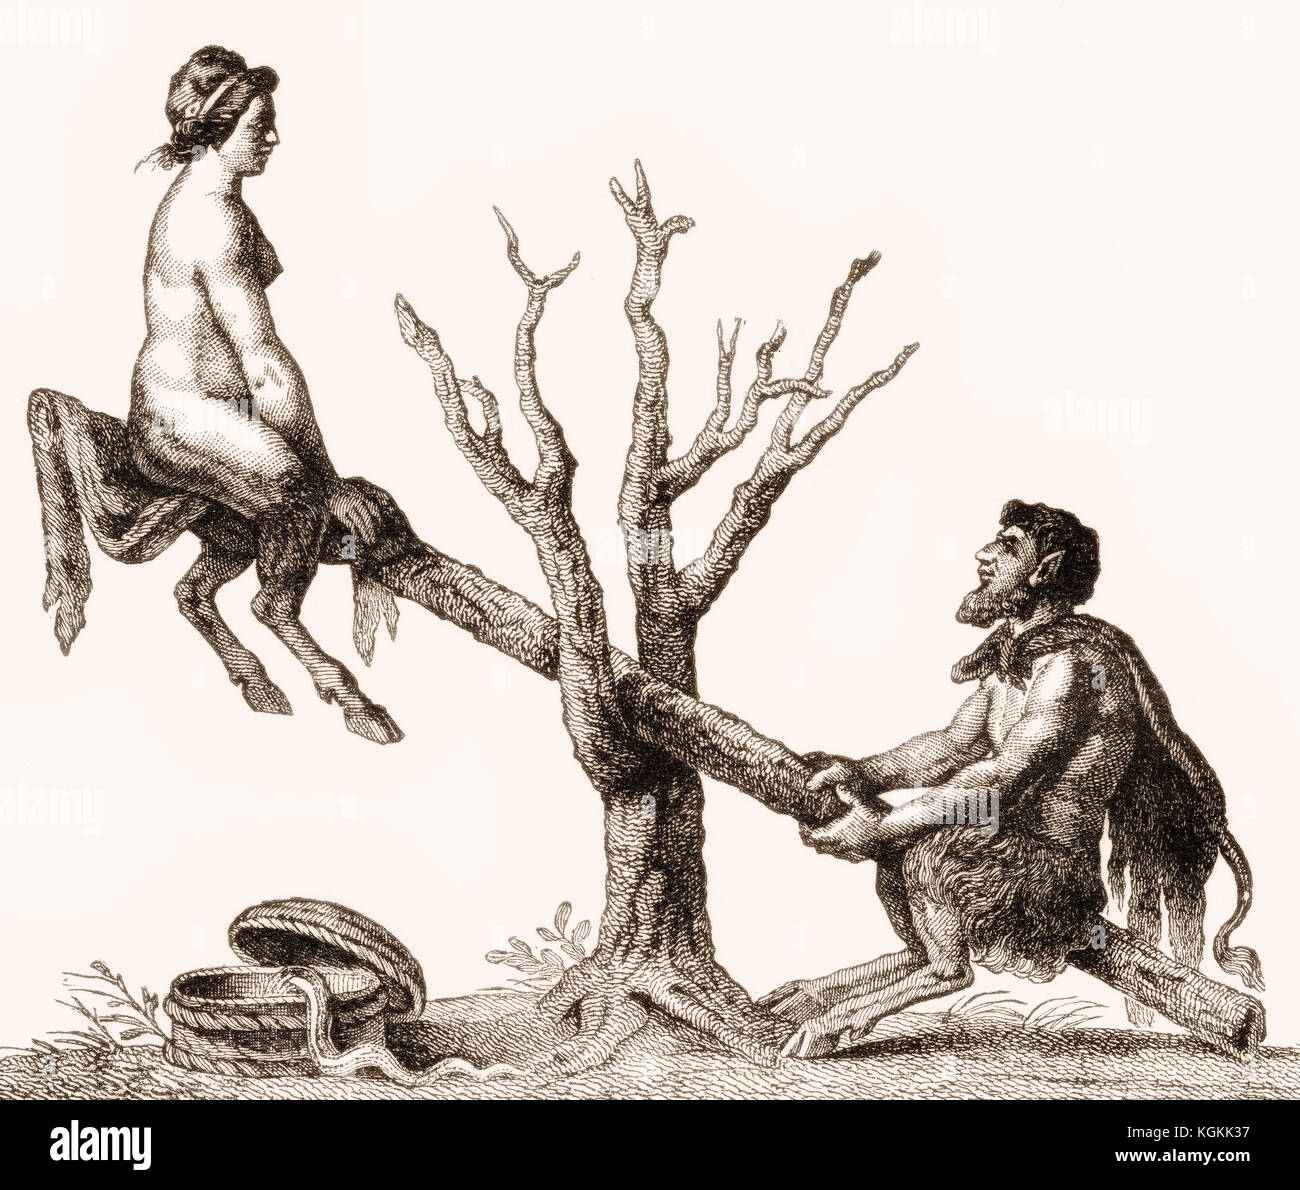 Caricature of Adam and Eve on a seesaw as devils - Stock Image